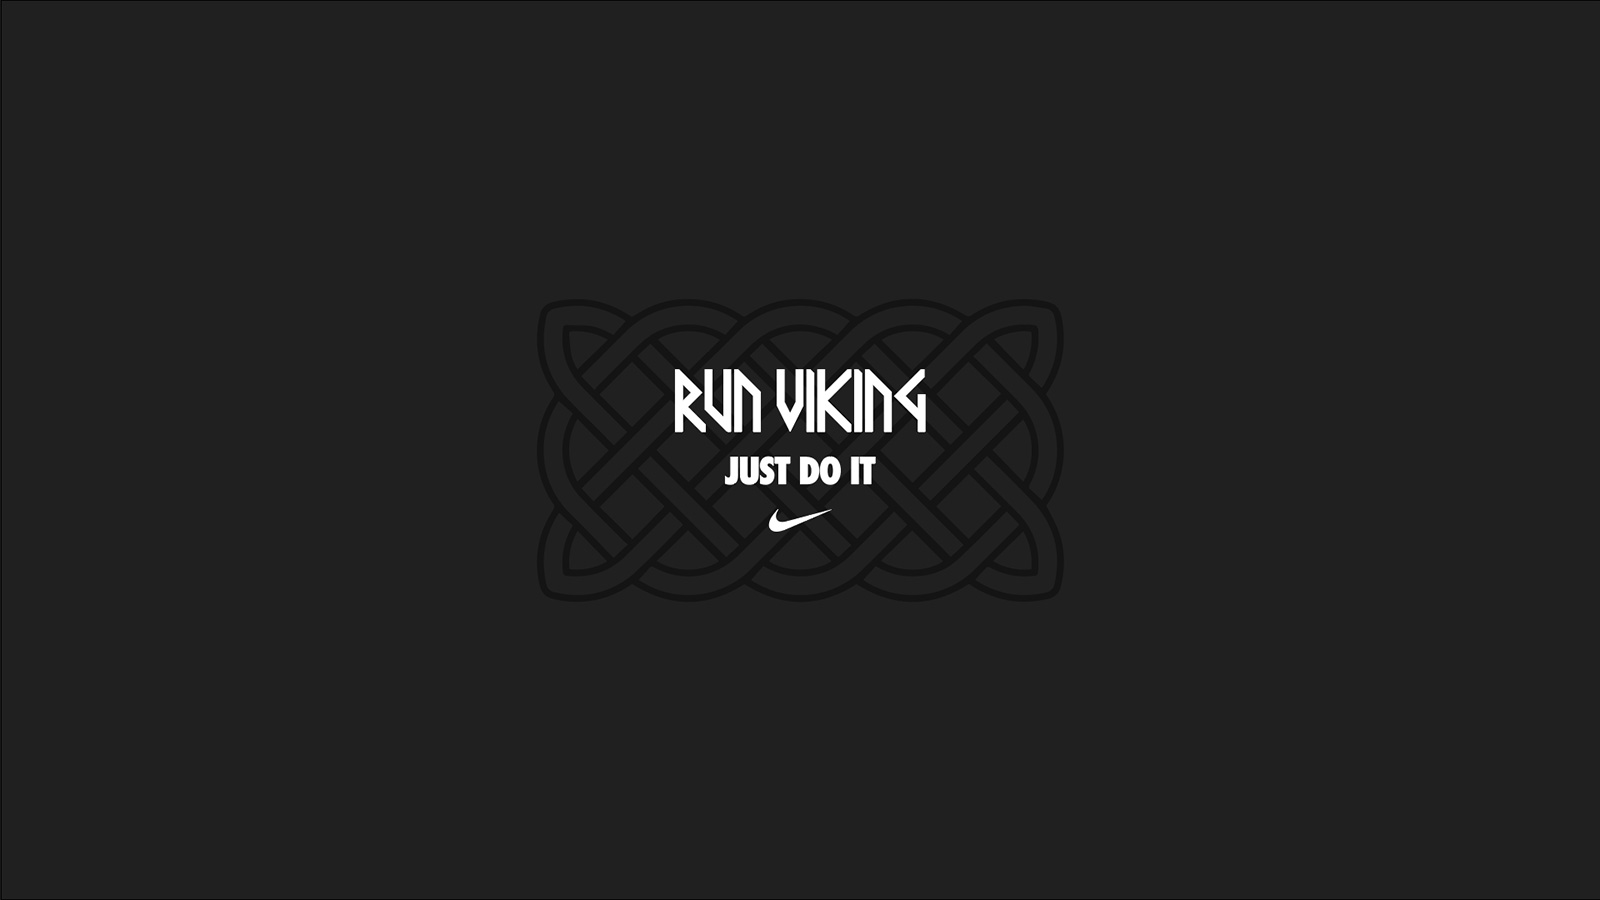 Runviking Large Fulllogo